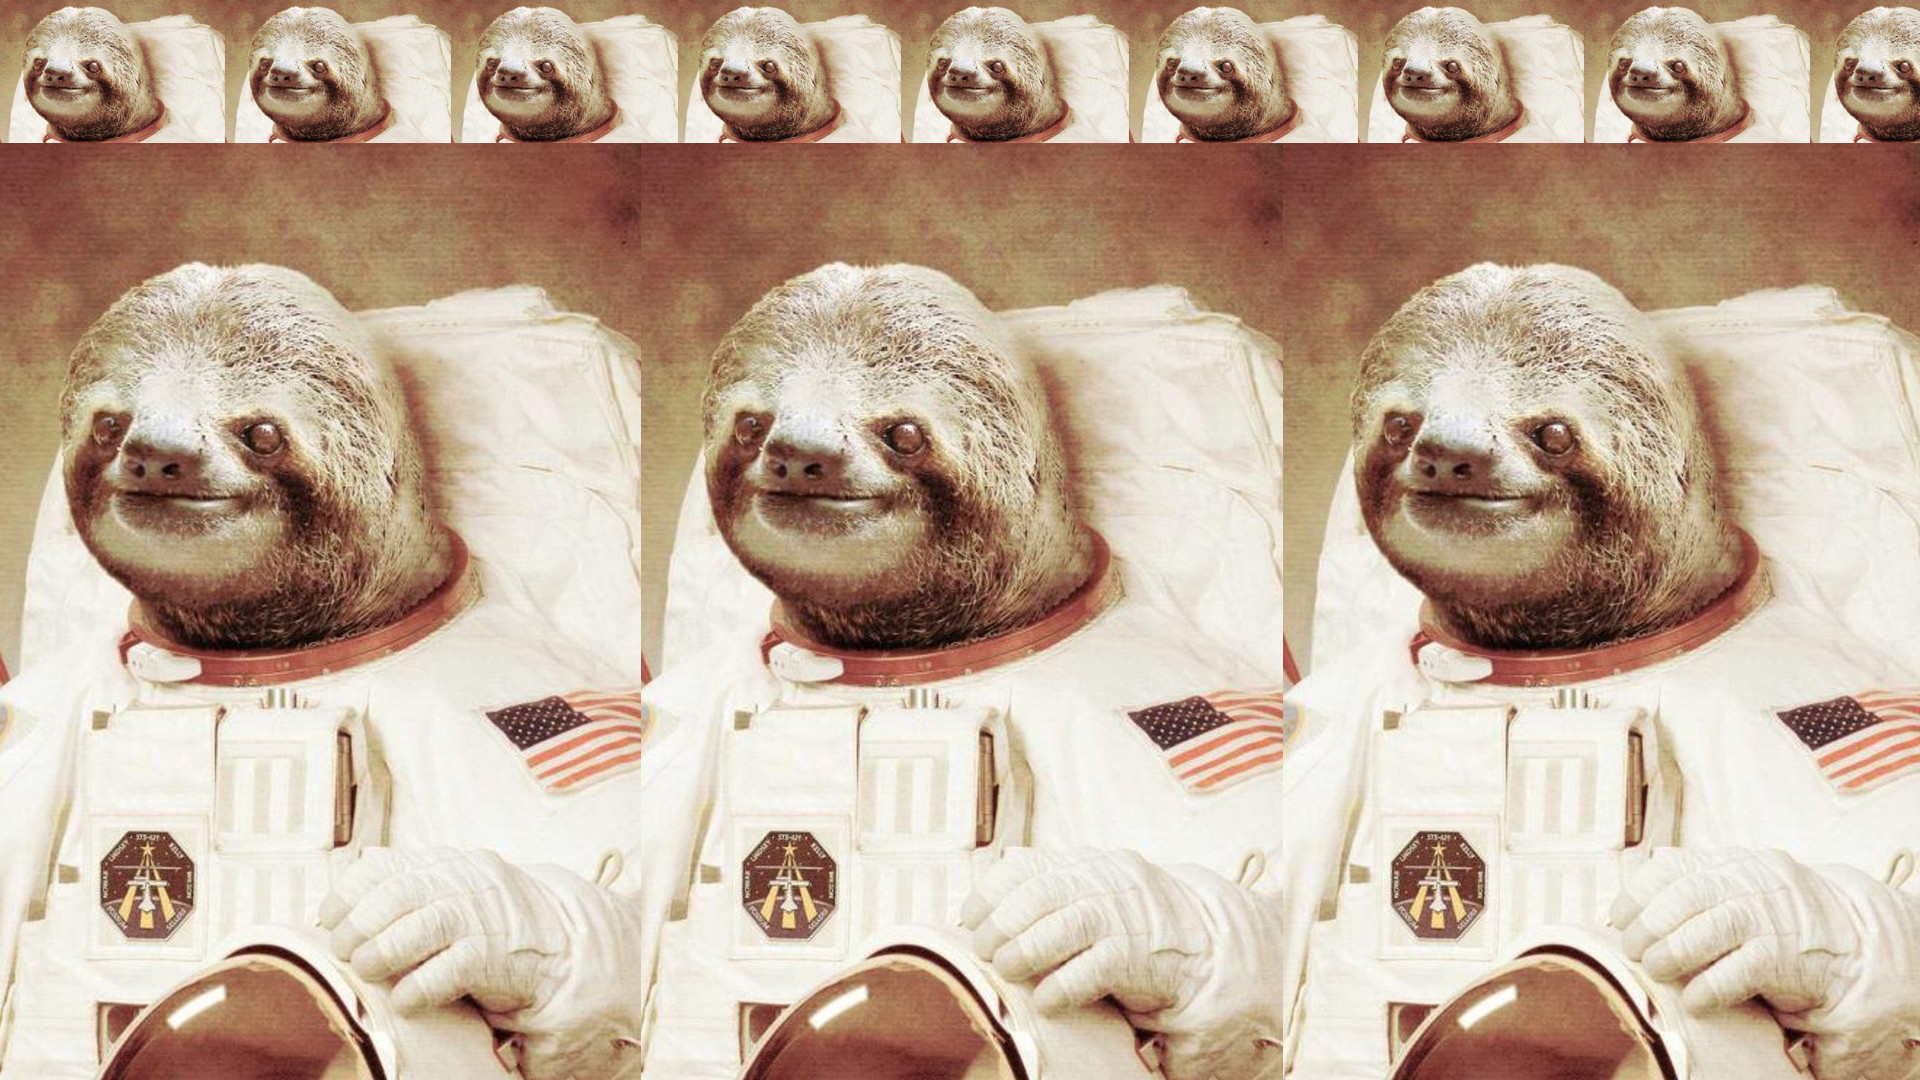 HD Widescreen Images Collection of Sloth: Ankur Gavahan